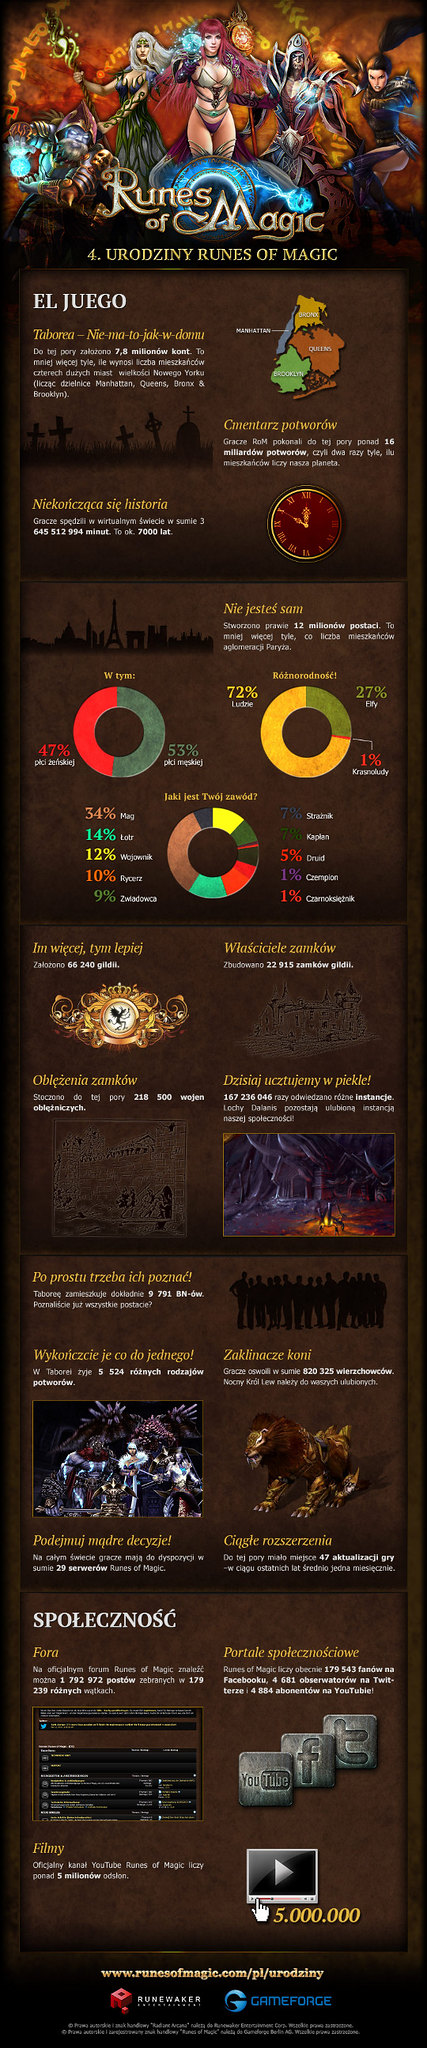 Runes of Magic: Urodzinowa Infografika (4 urodziny)